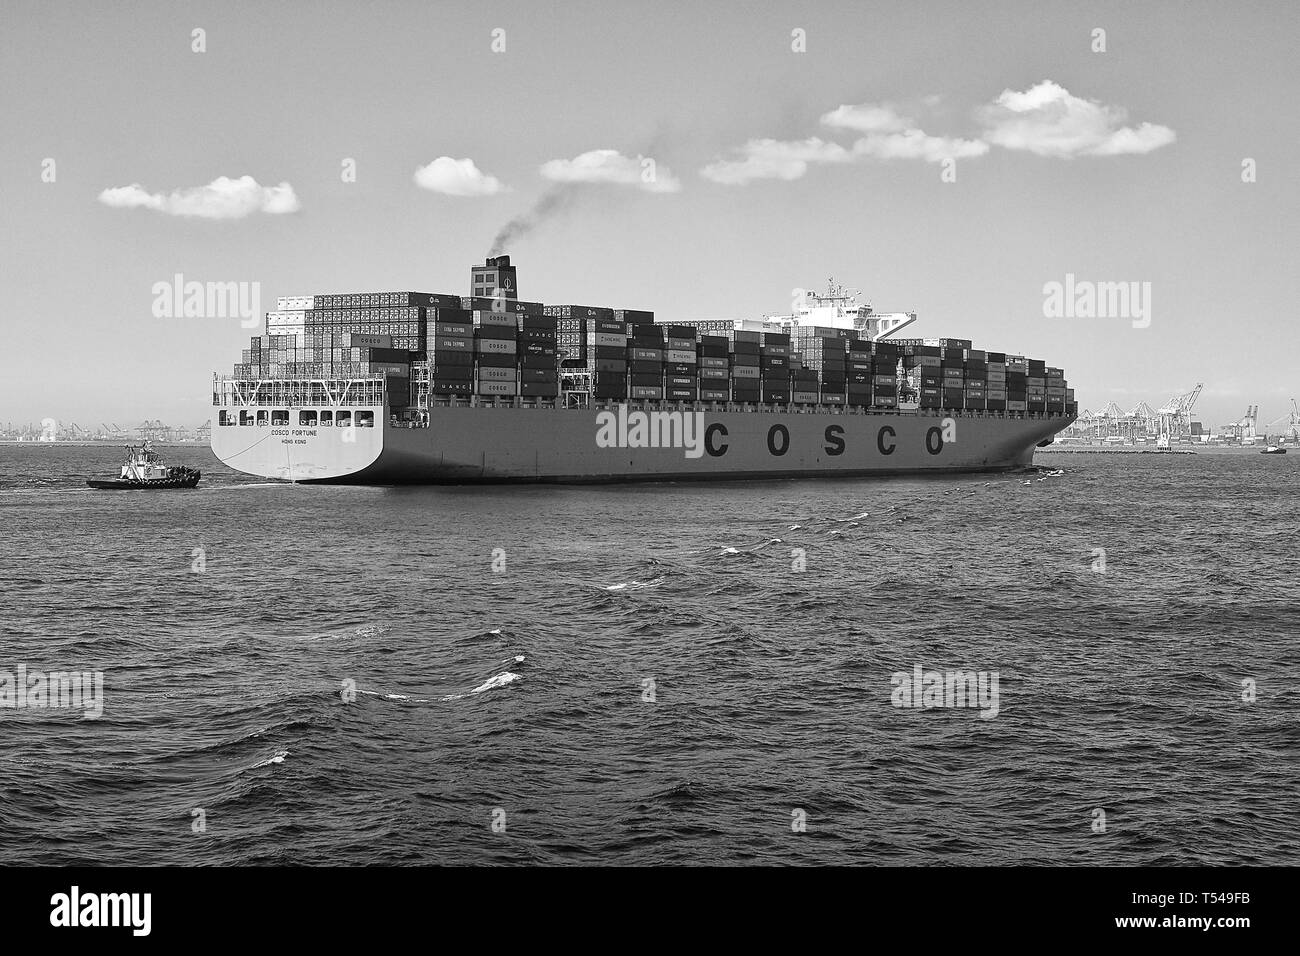 Black And White Image Of The Fully Loaded COSCO Shipping, Container Ship, COSCO FORTUNE, Entering The Port Of Long Beach, California, USA. - Stock Image